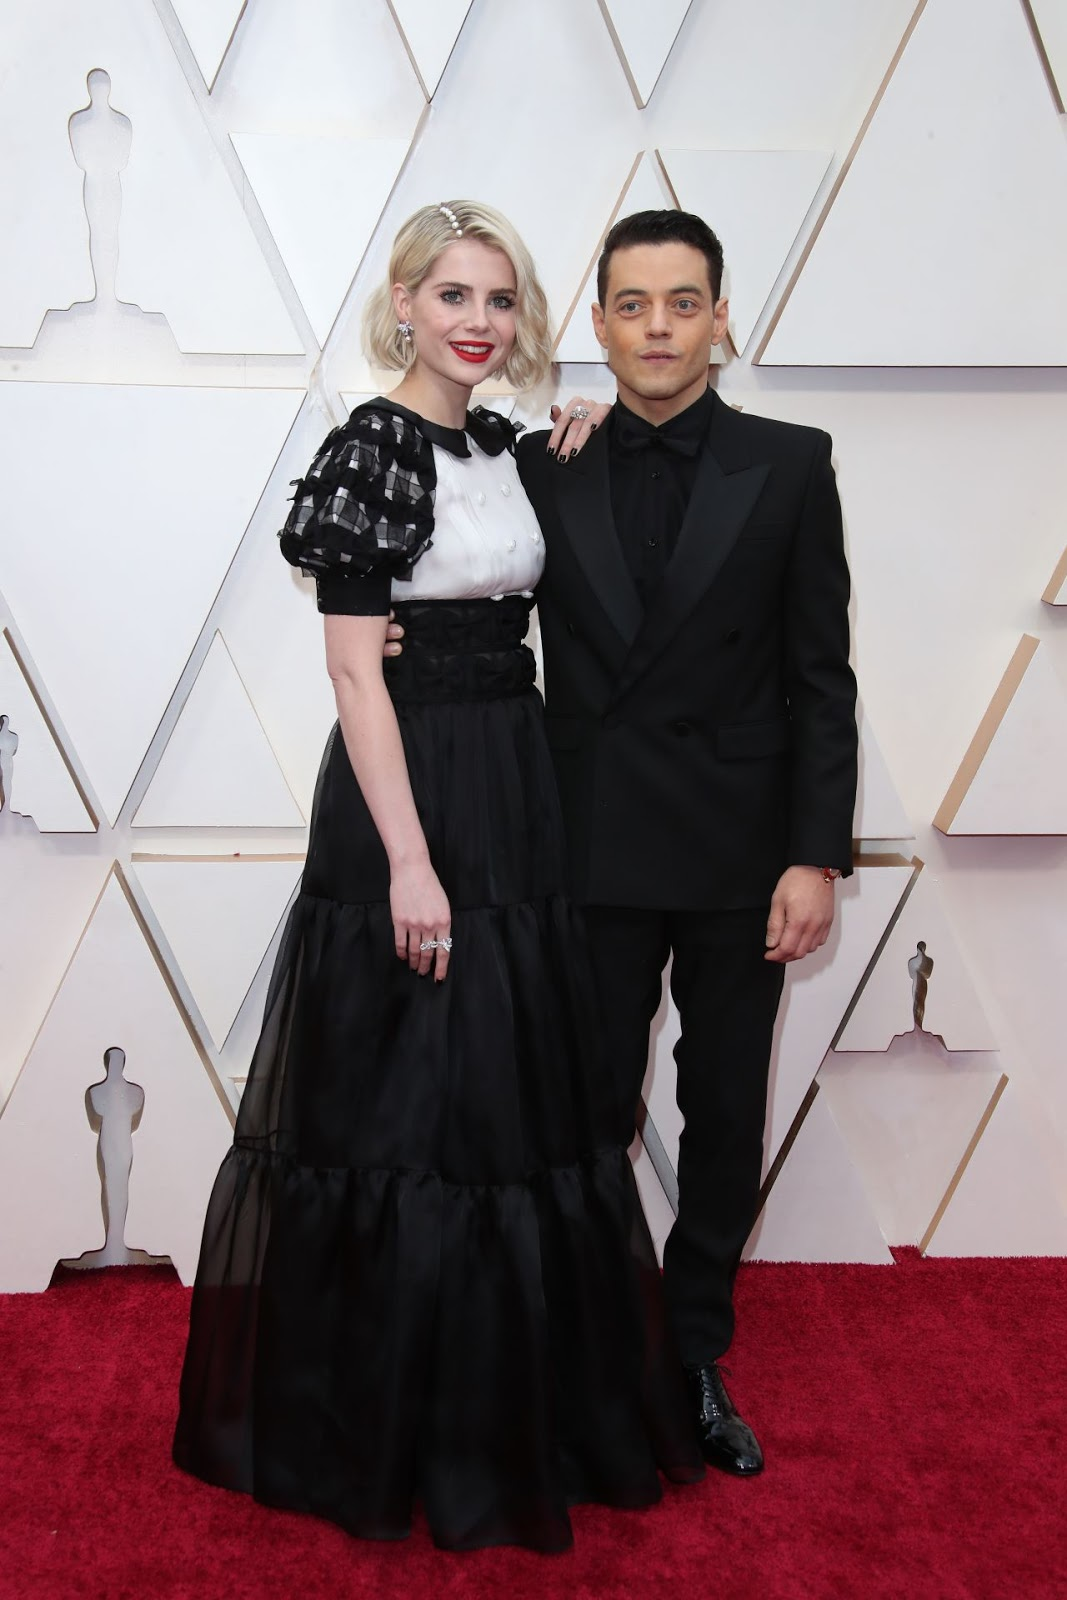 Rami Malek and Lucy Boynton Stepped Up Their Couple Style for the Oscars Red Carpet